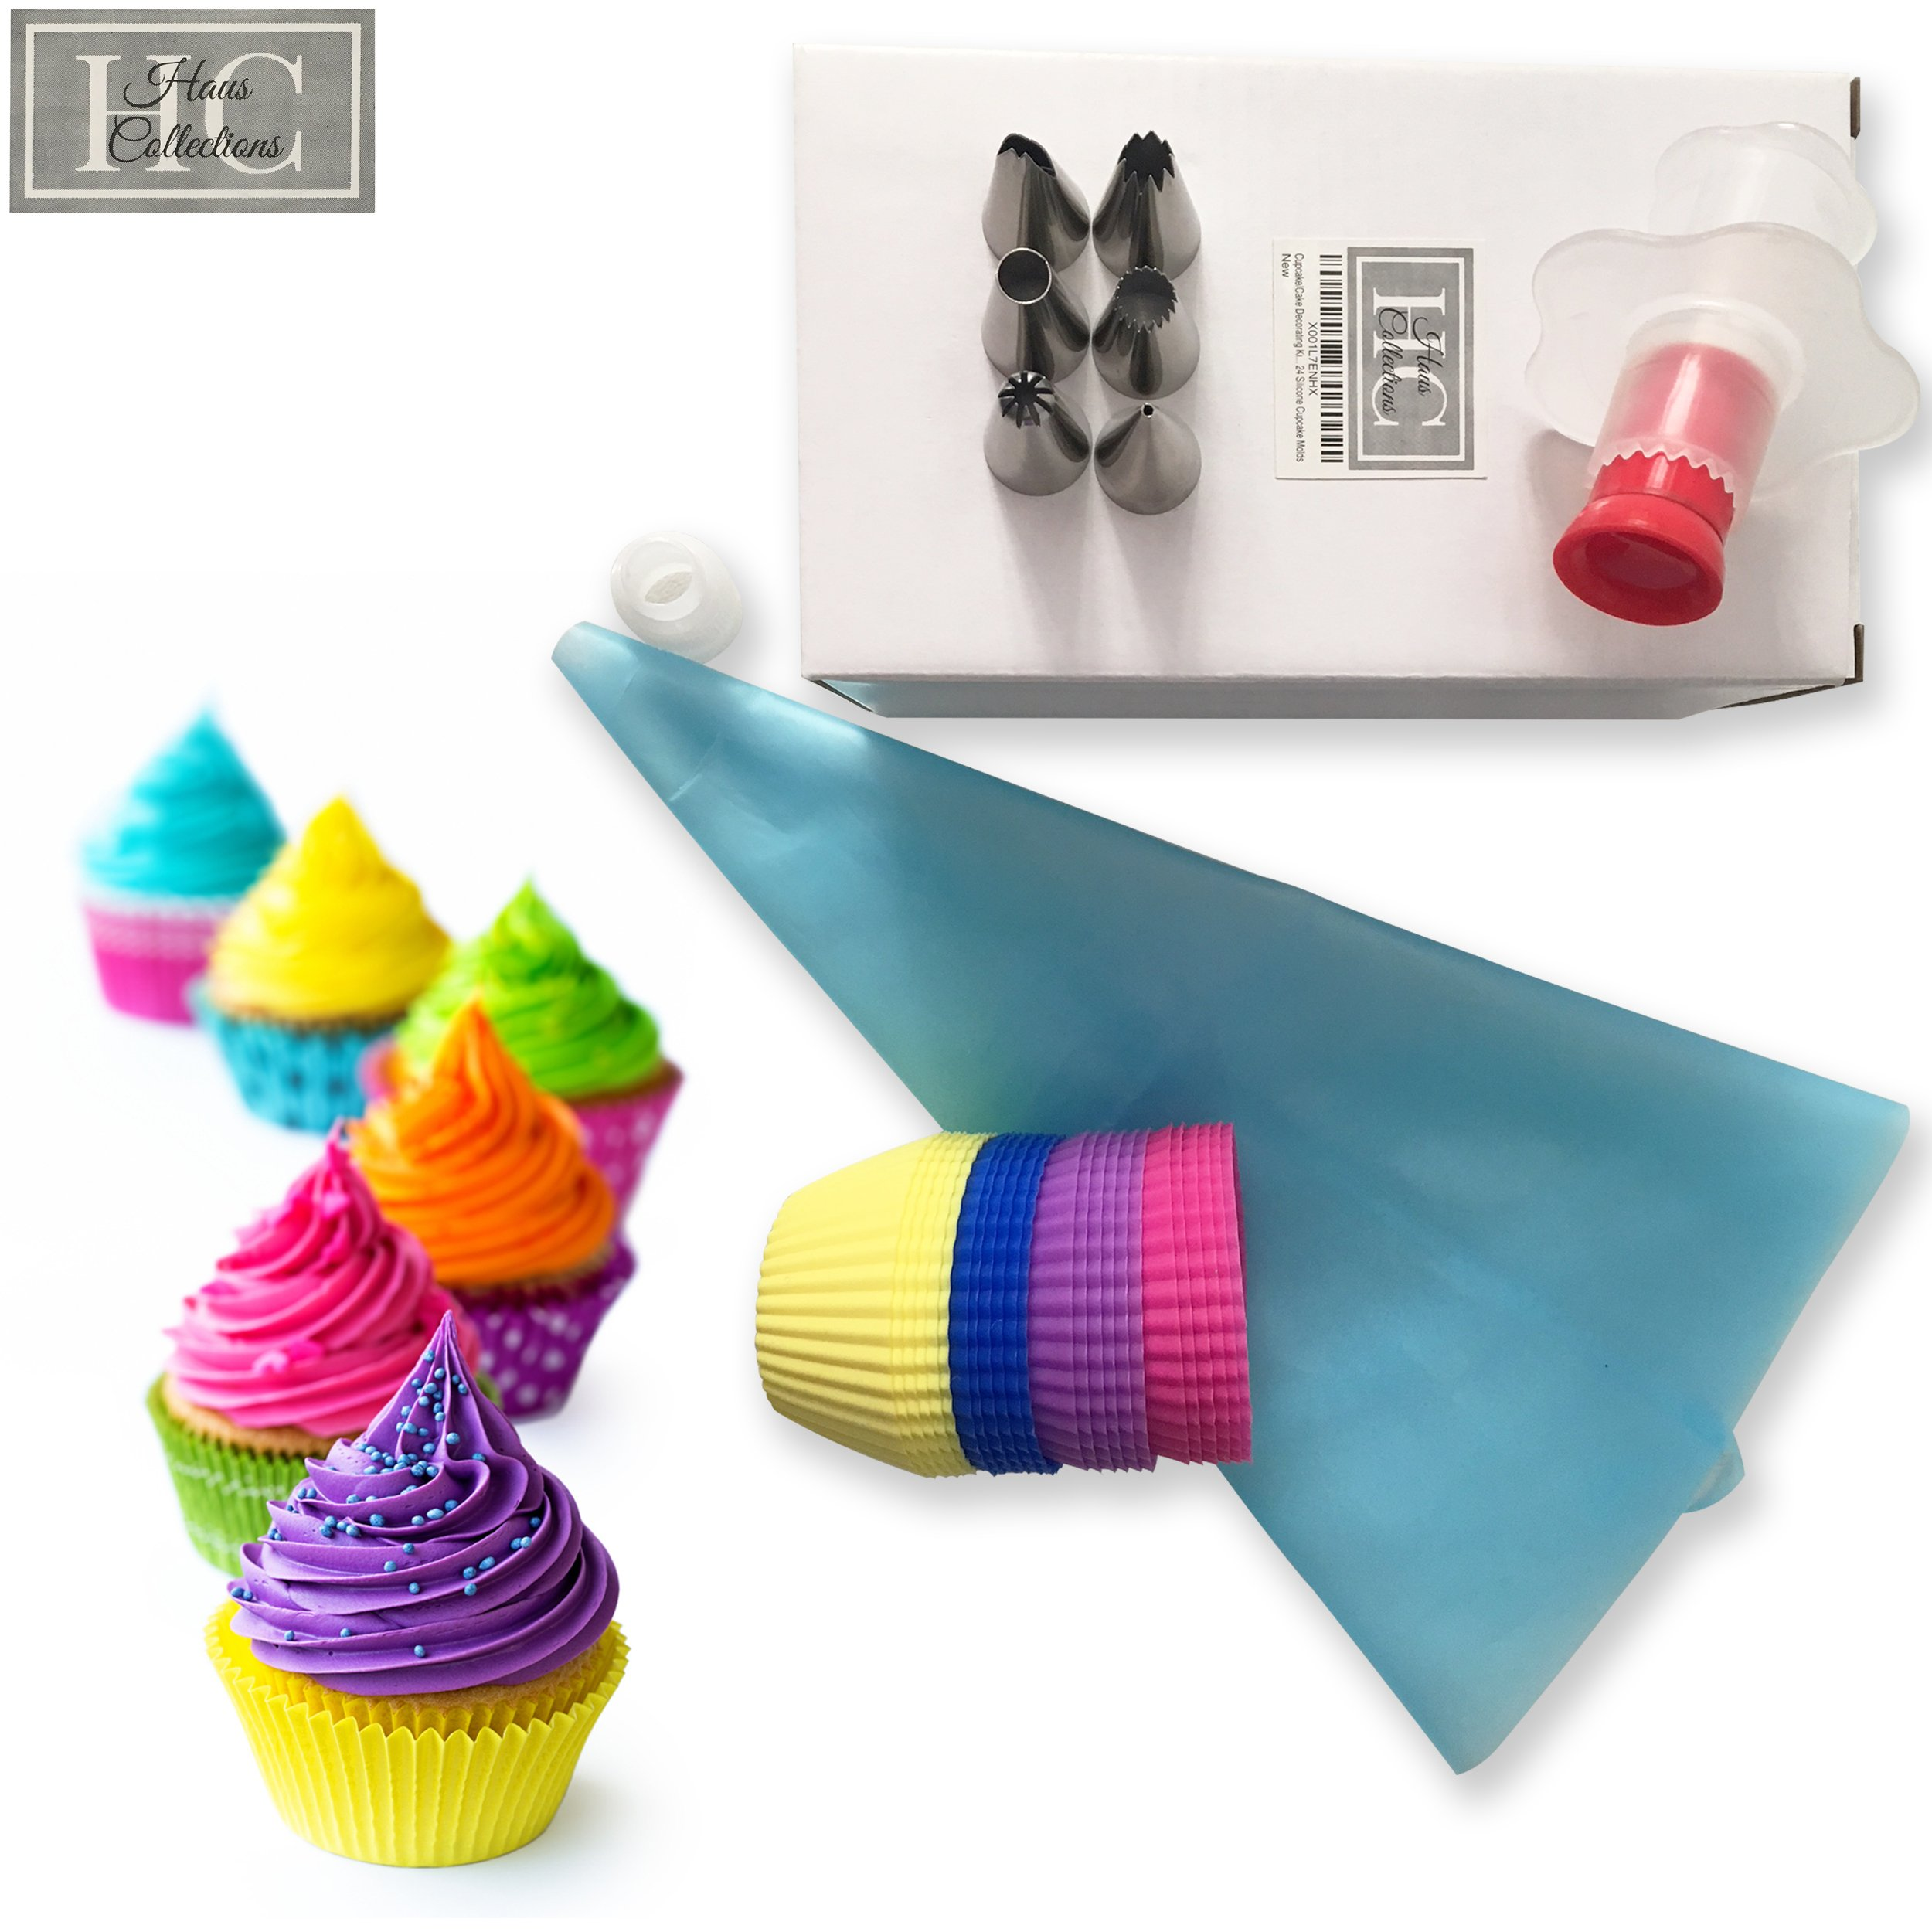 Cupcake Cake Decorating Kit Including 6 Interchangeable Stainless Steel Tips with Reusable Icing Pastry Bag and Coupler, Cupcake Corer and 24 Silicone Cupcake Molds